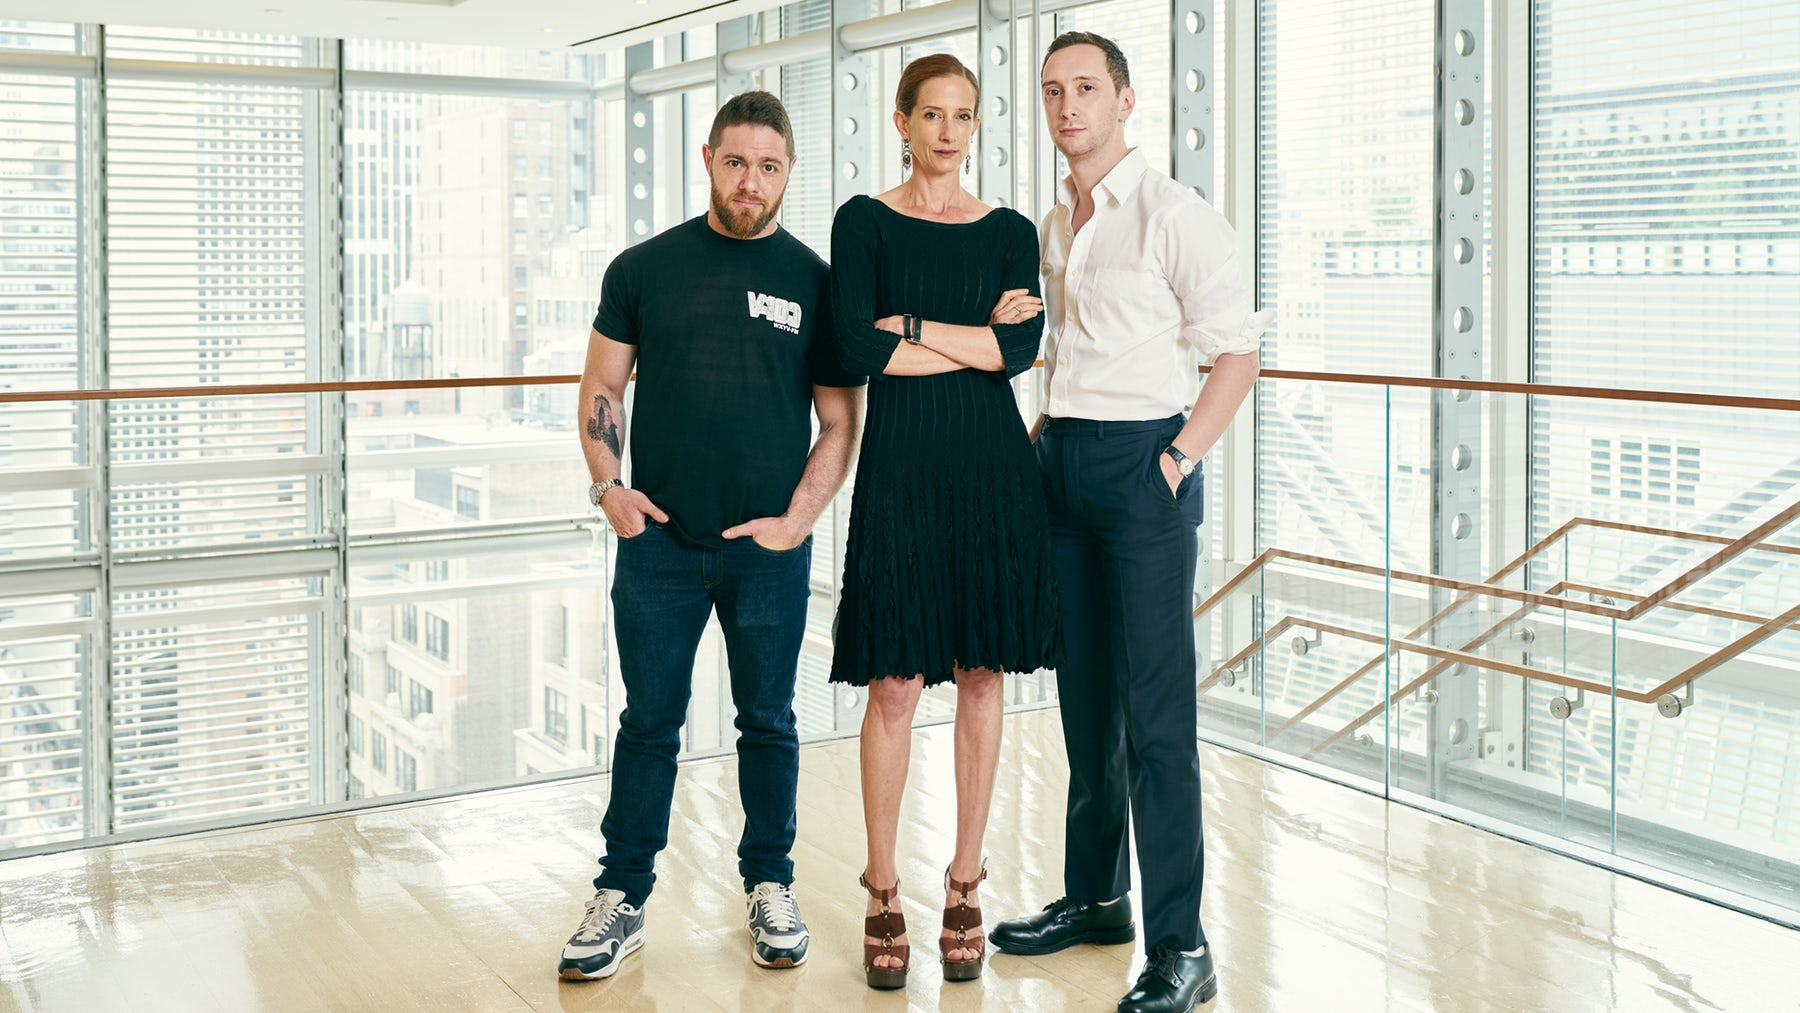 Jacob Bernstein, Vanessa Friedman and Matthew Schneier, the New York Times Styles team who uncovered allegations of sexual misconduct against Mario Testino and Bruce Weber | Photo: Adam Hoff for BoF